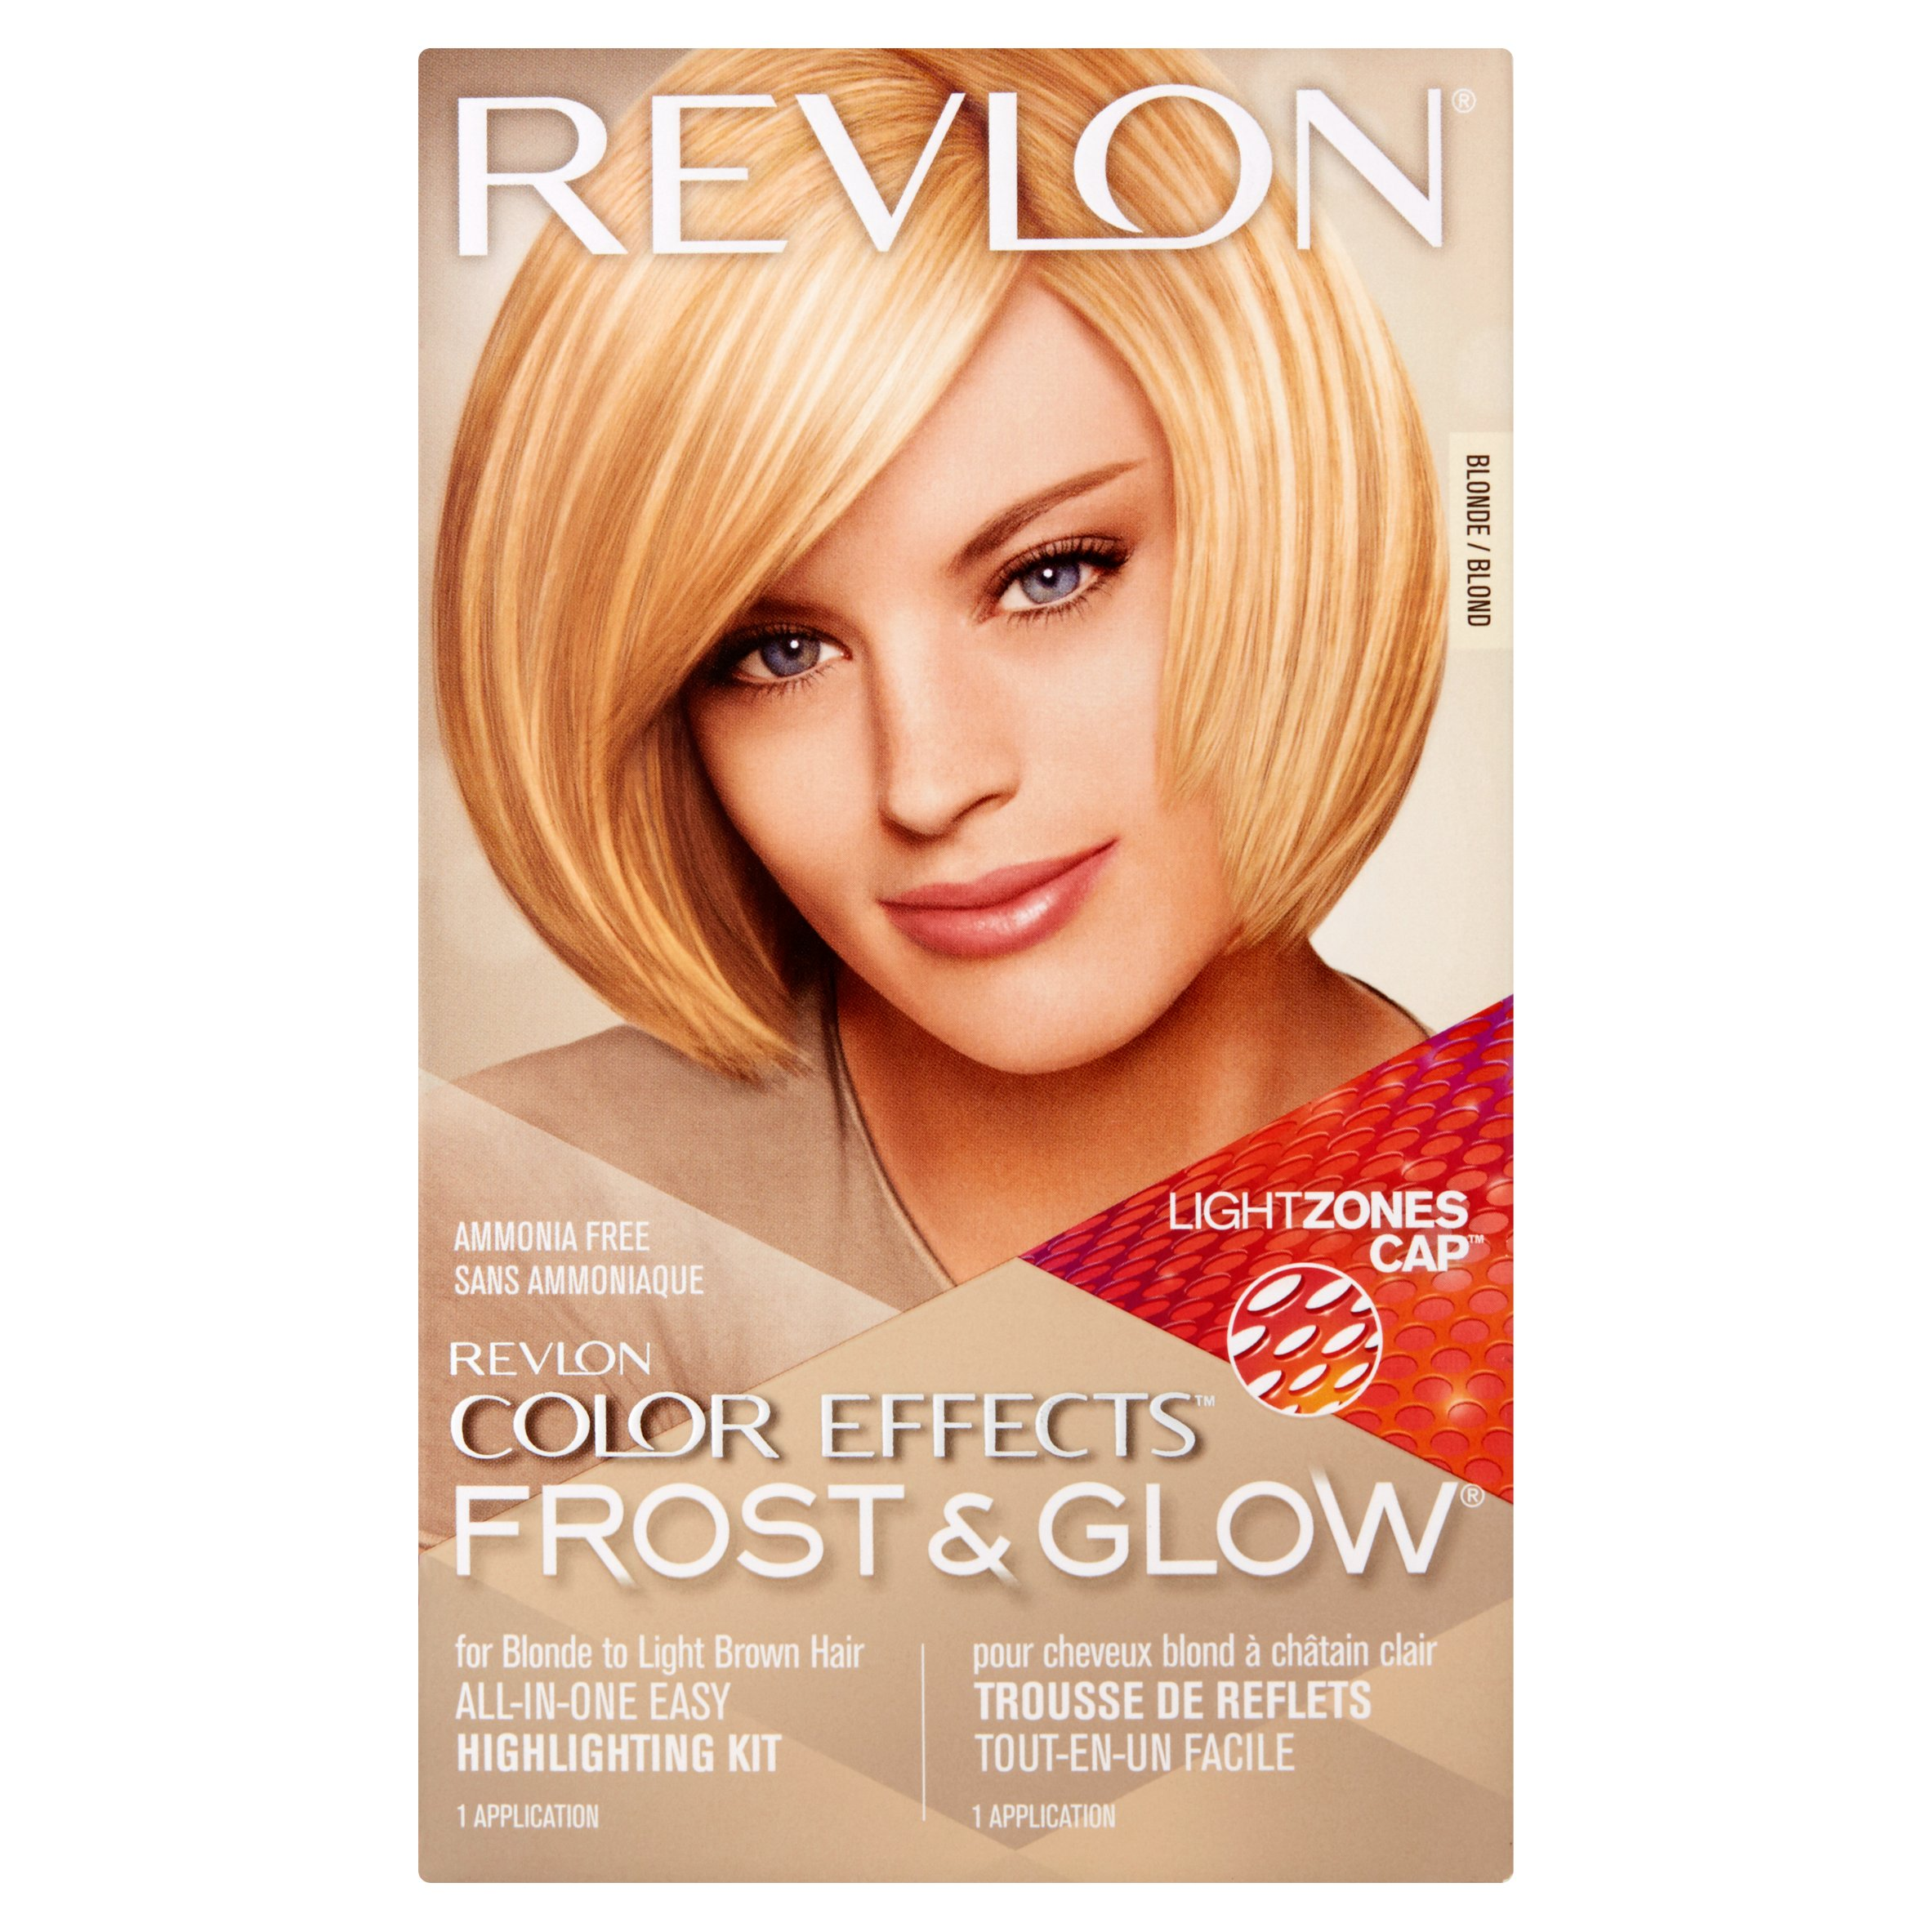 Revlon Color Effects Frost Glow Hair Highlighting Kit Blonde